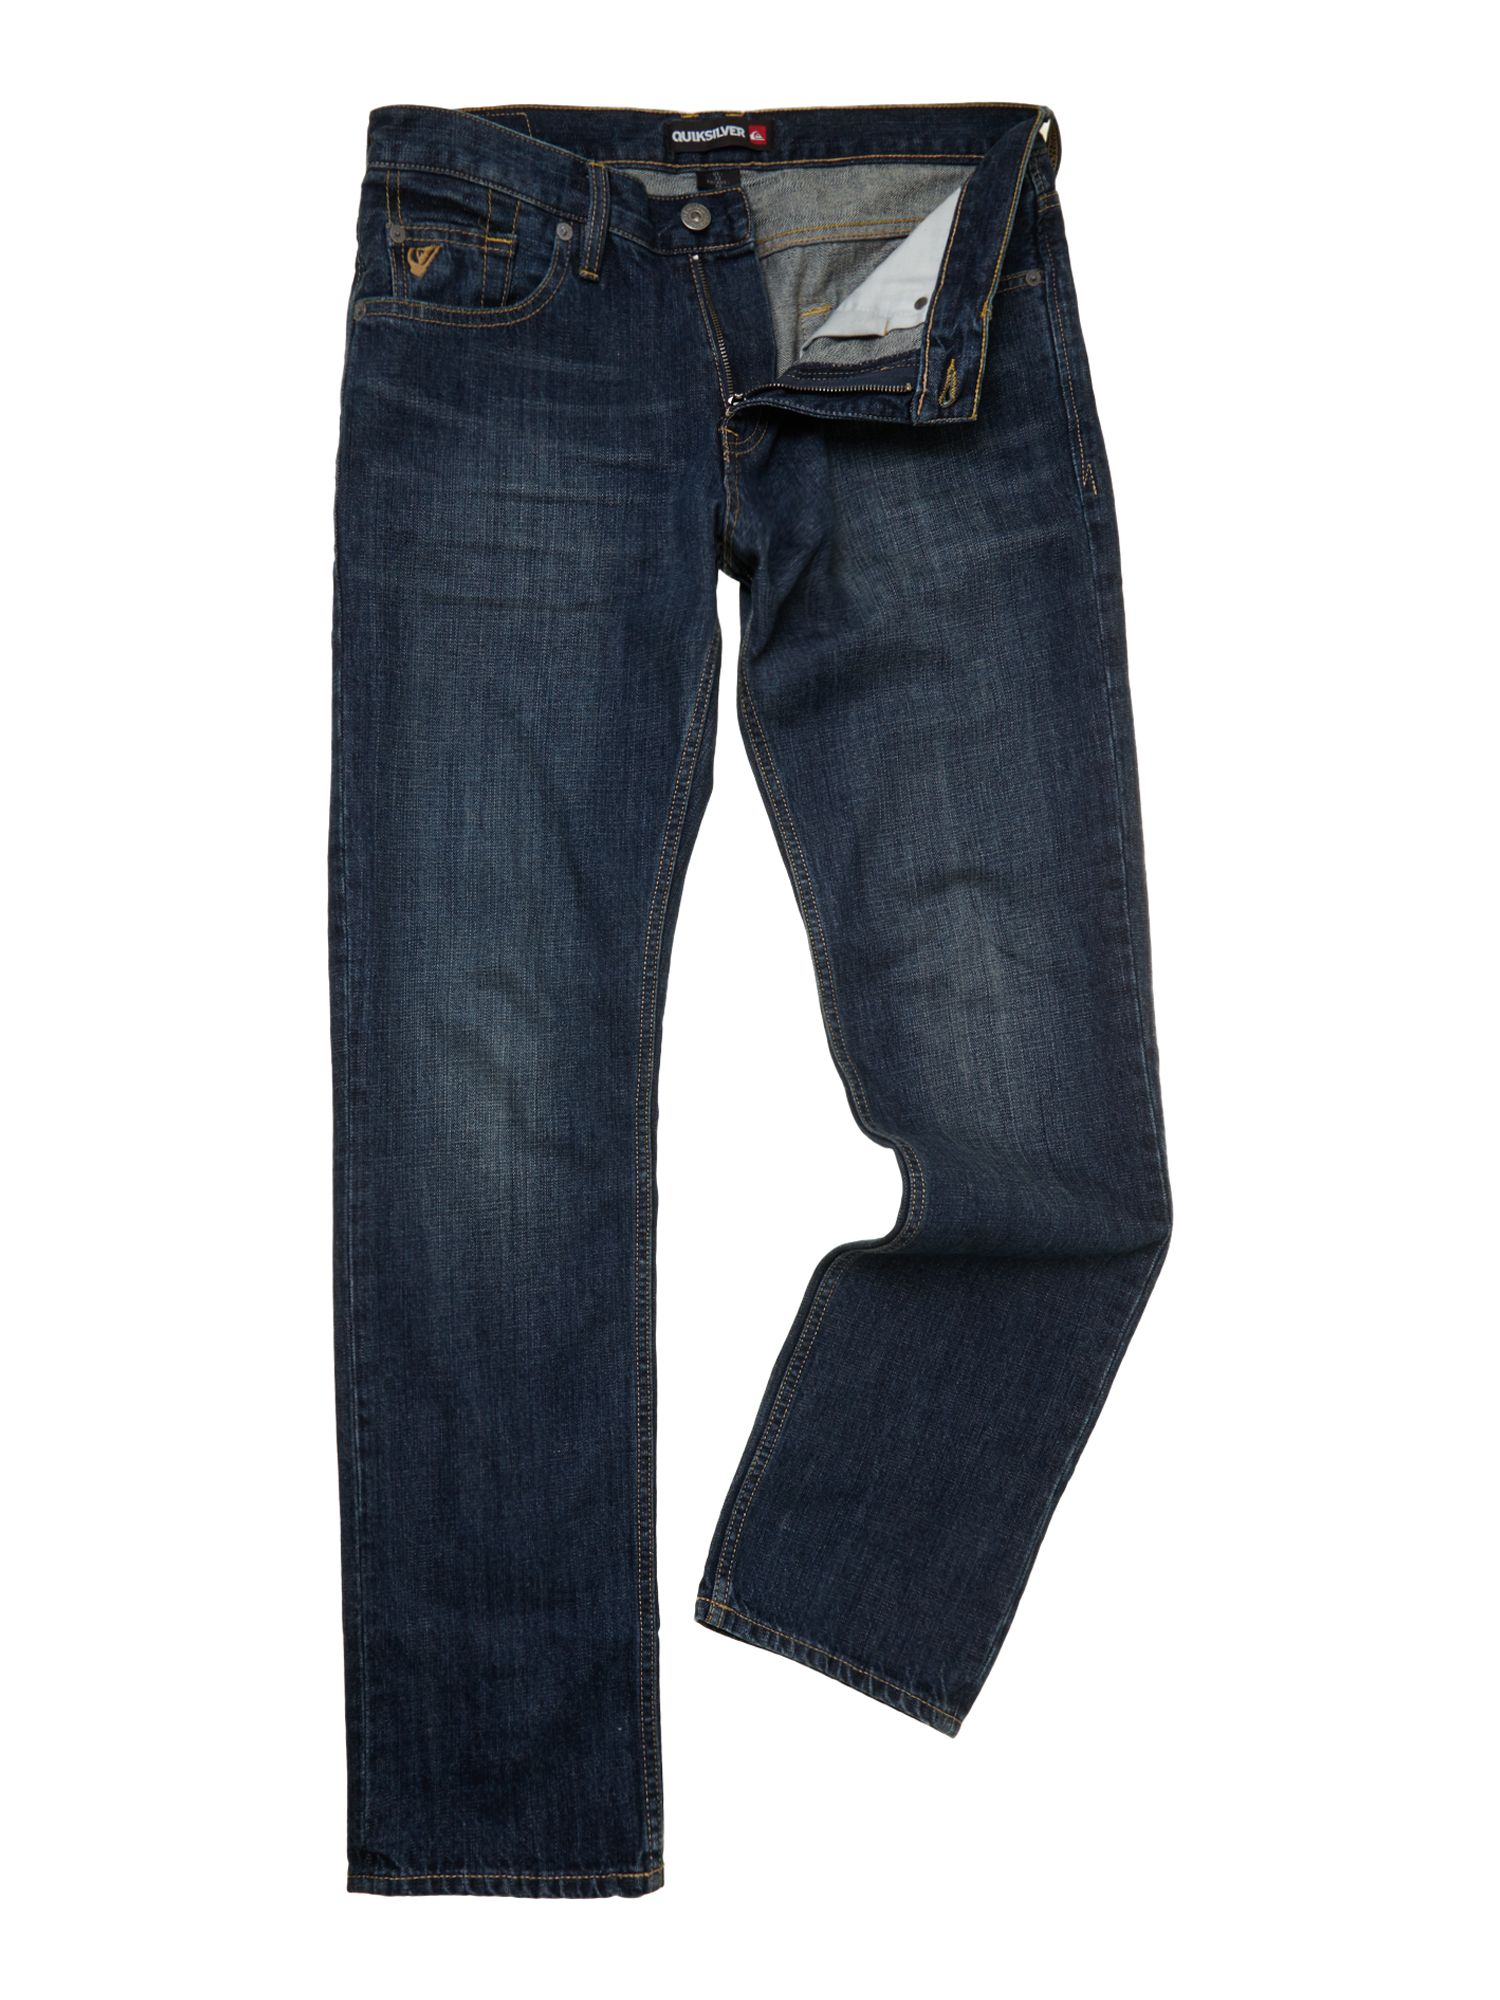 Sequel york l jeans